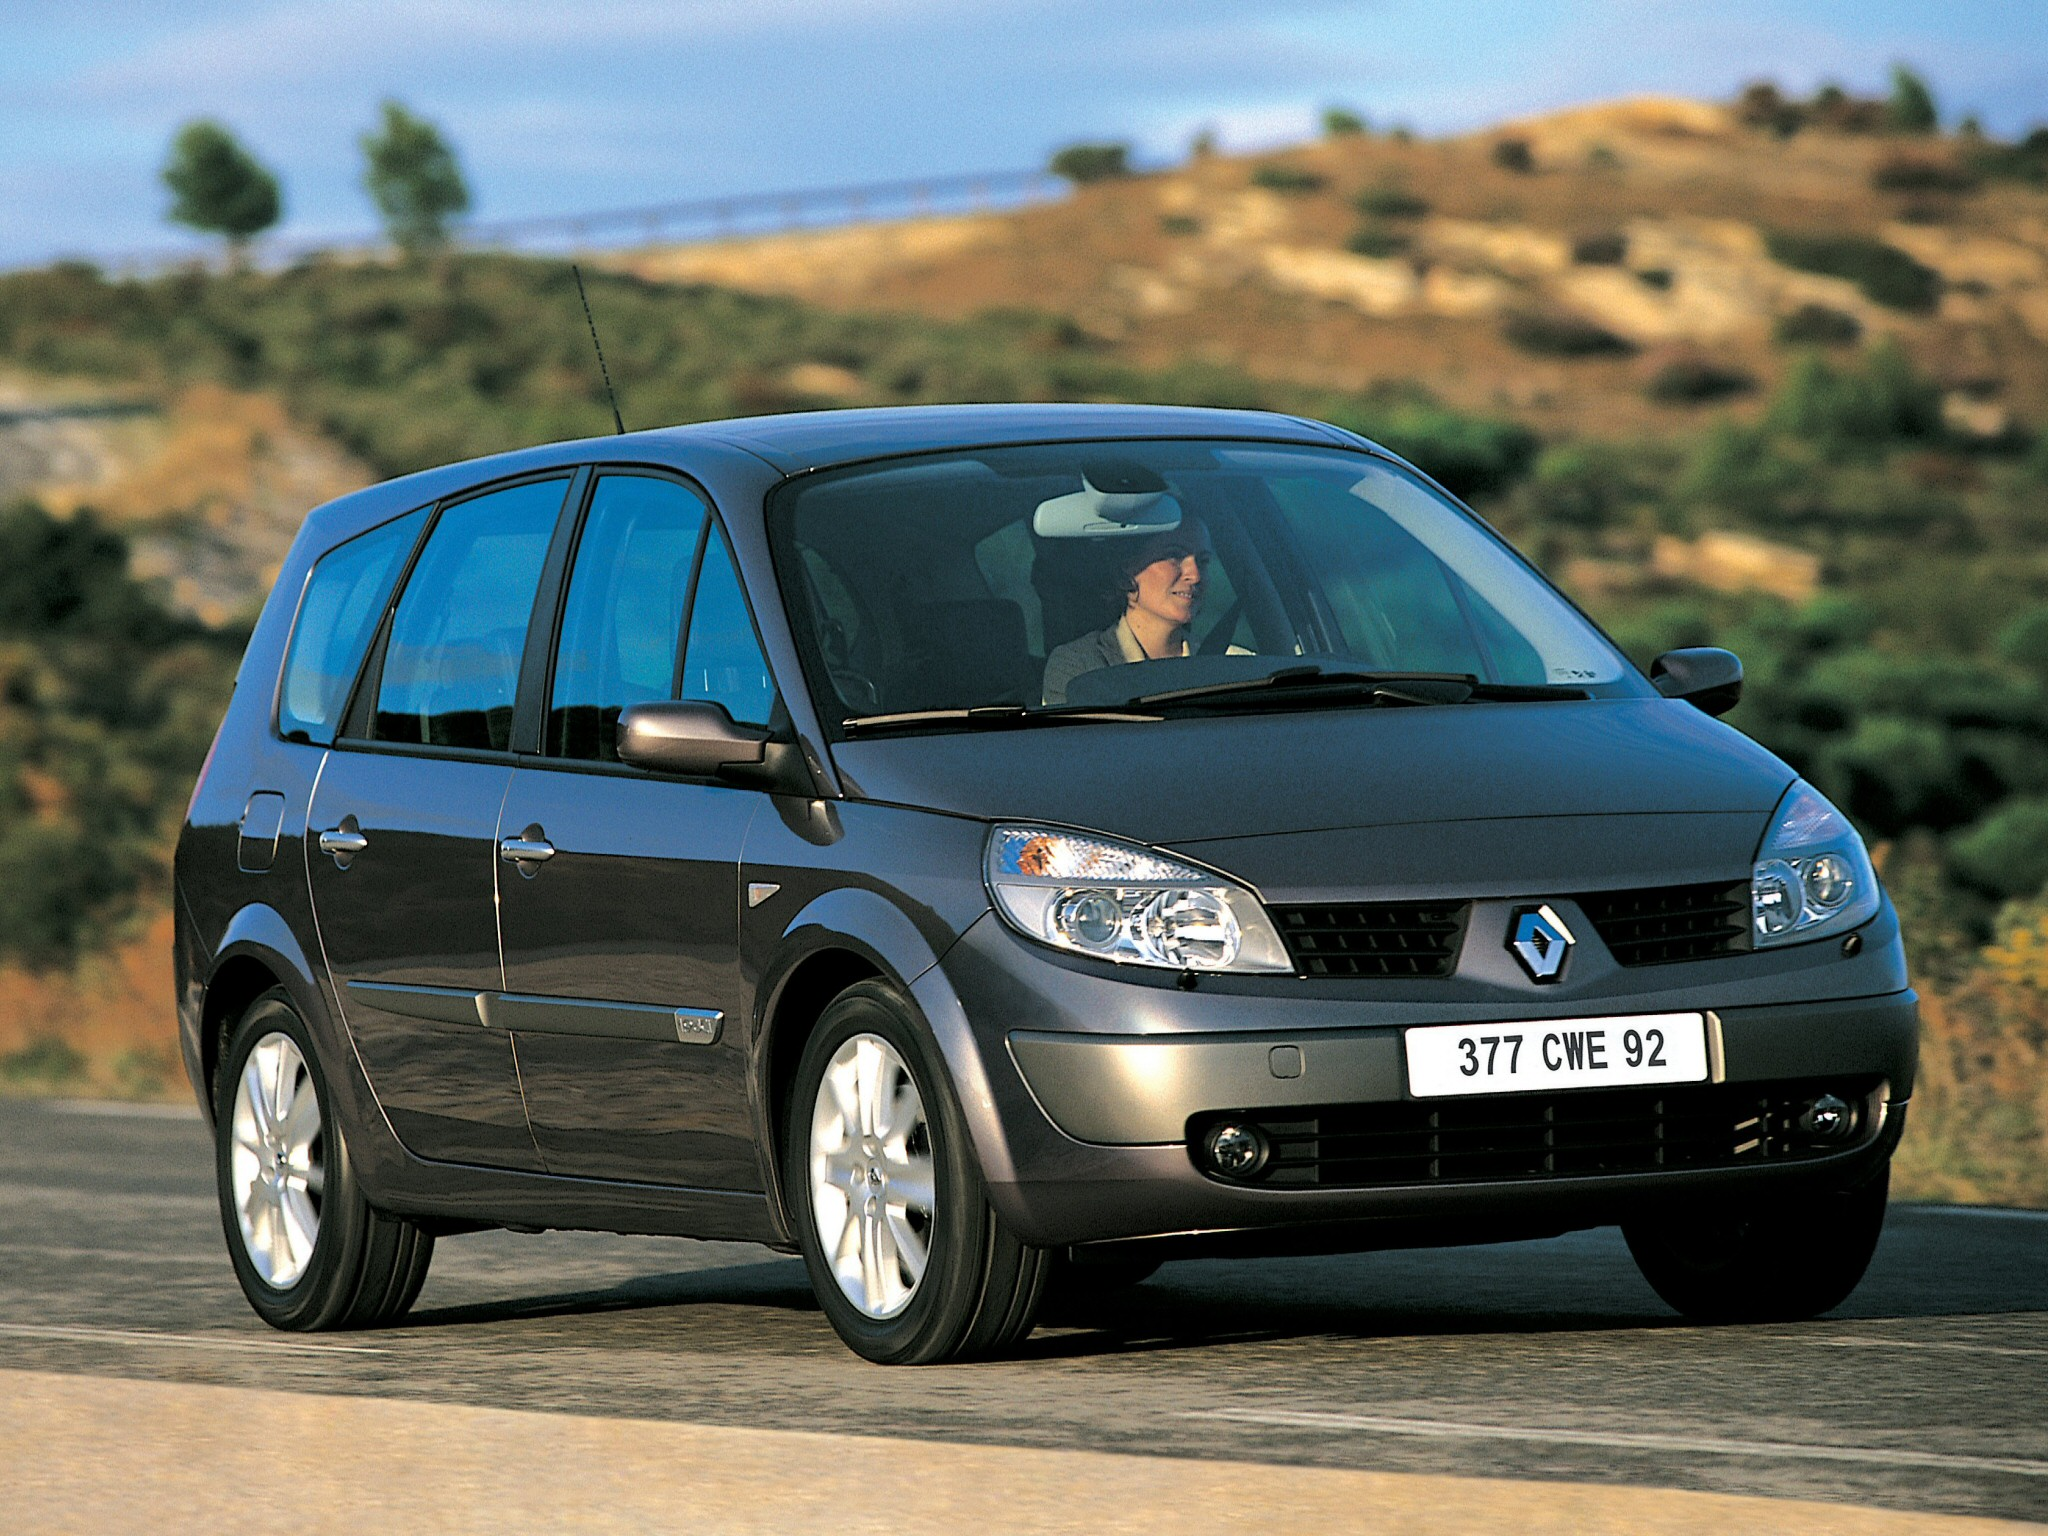 renault scenic 2 0t 2007 technical specifications interior and exterior photo. Black Bedroom Furniture Sets. Home Design Ideas